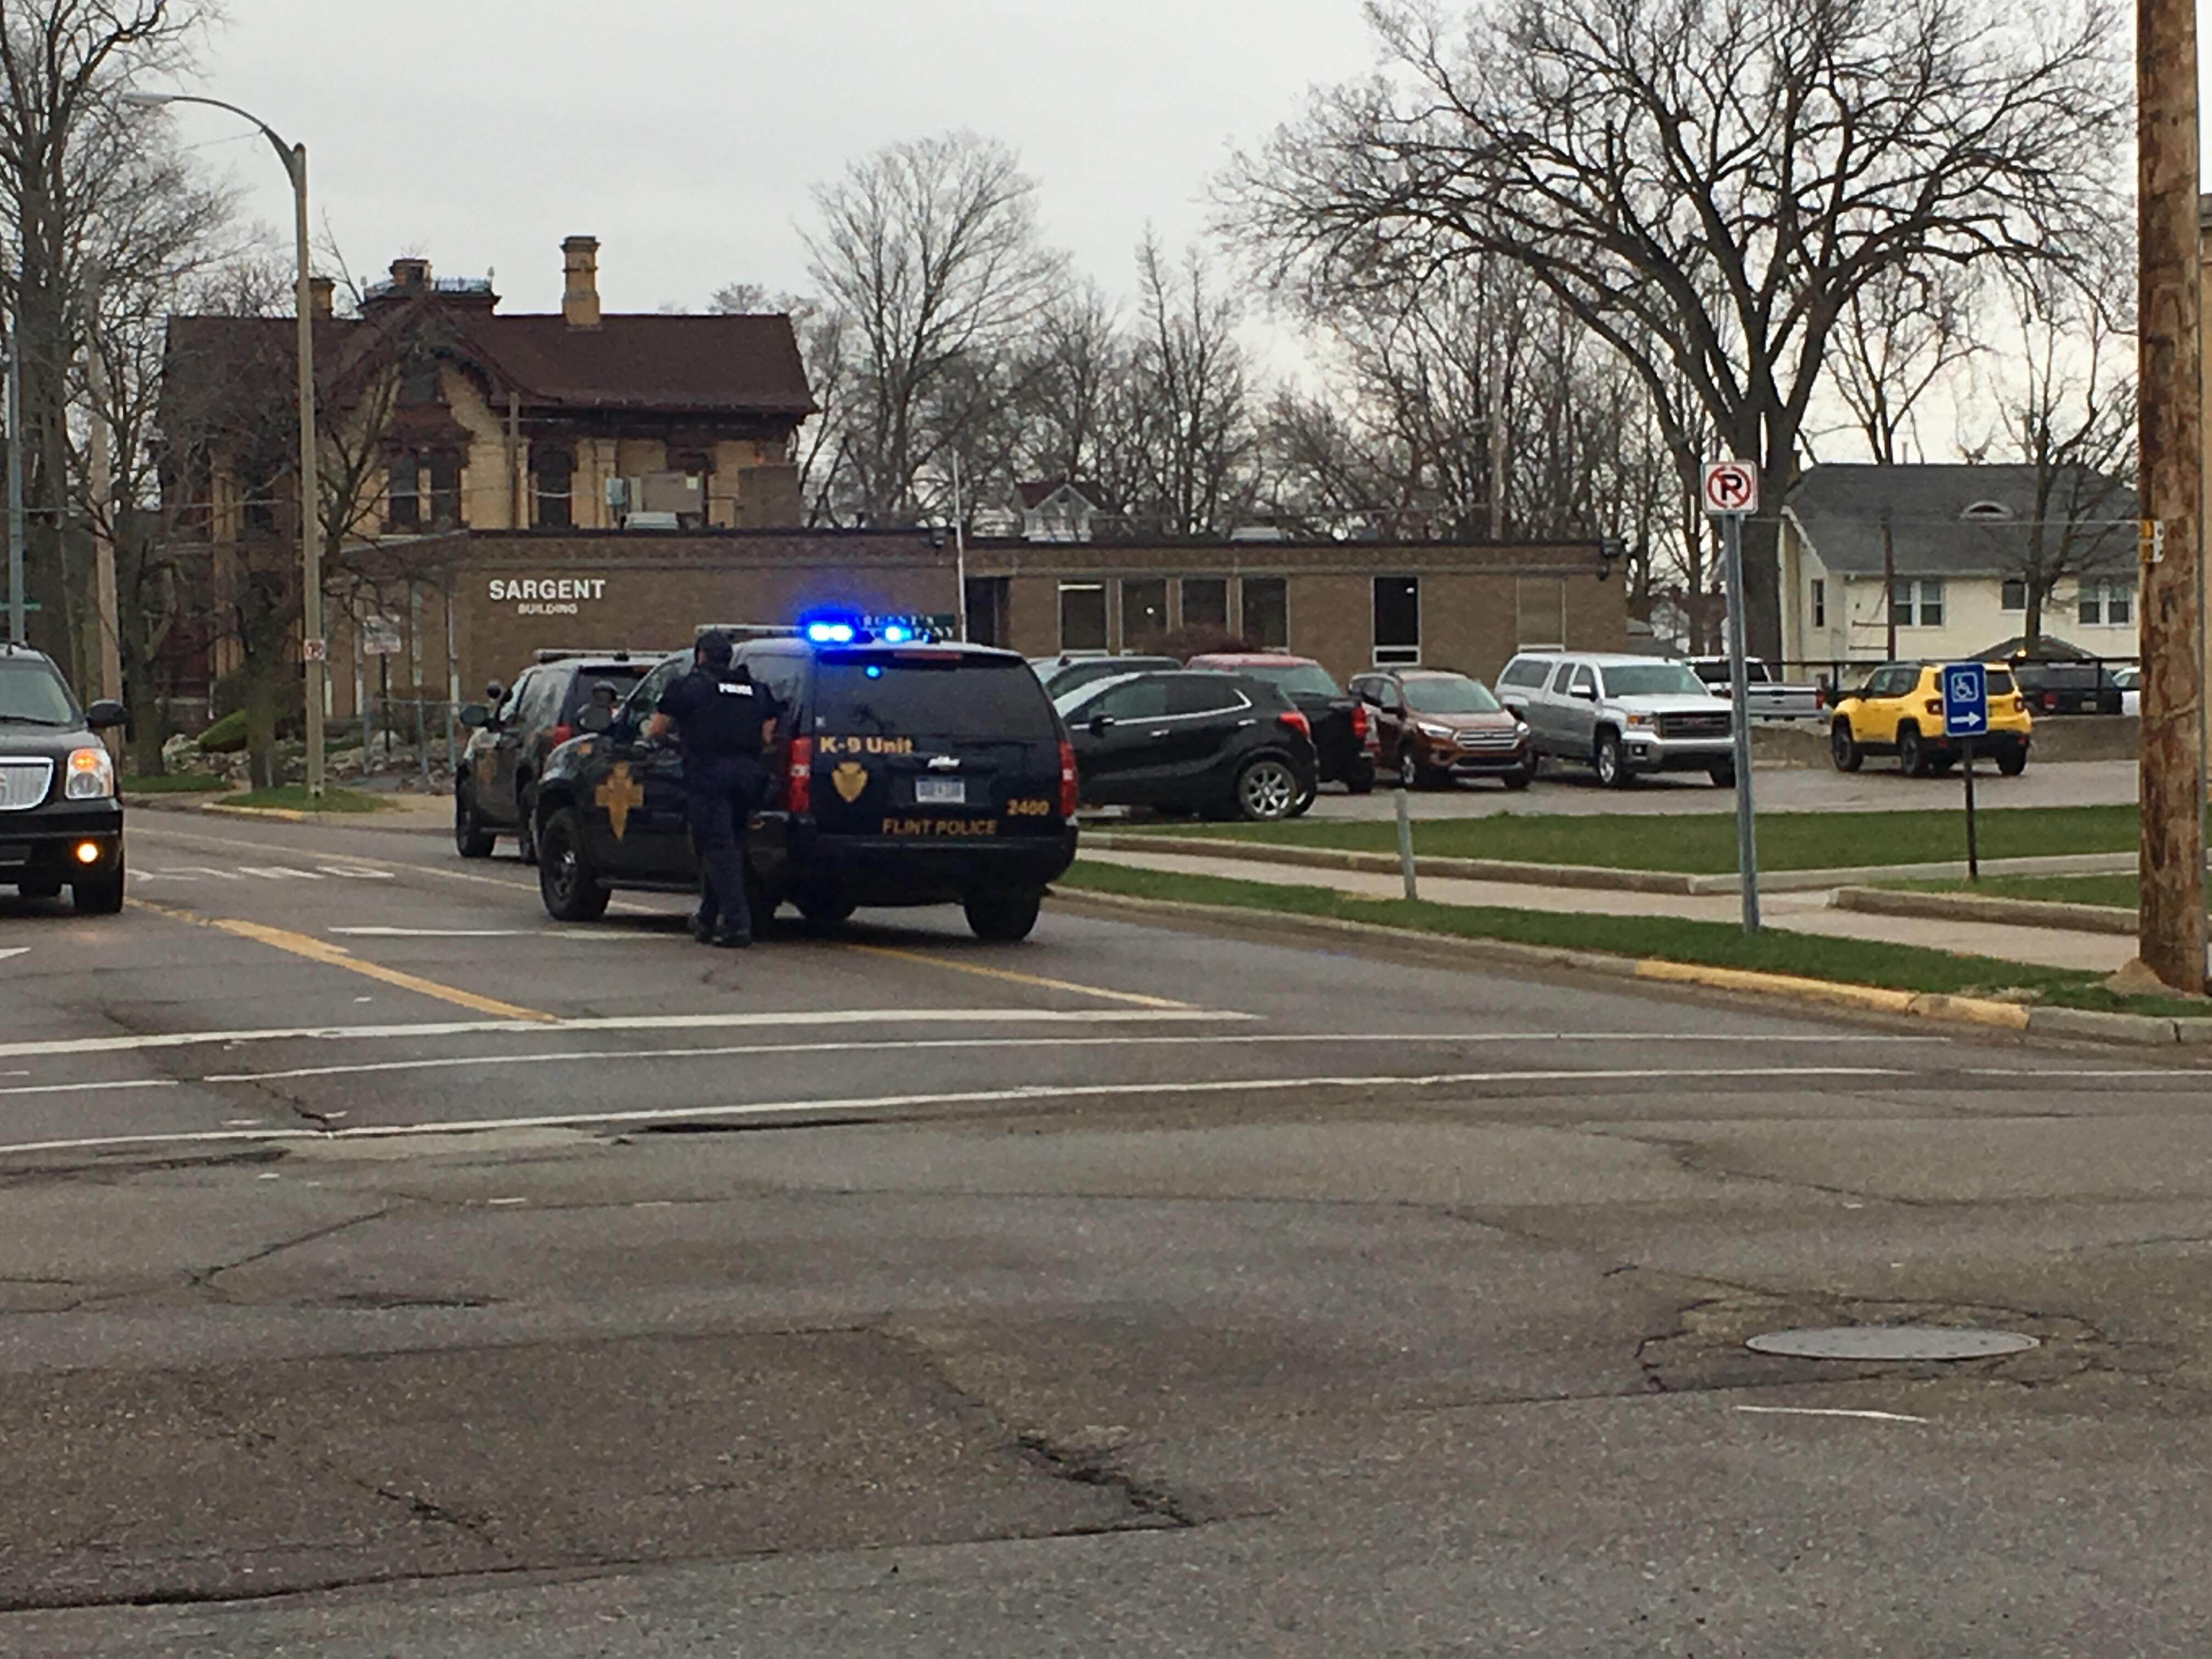 <p>A suspicious package was found at the Federal Building in Flint. (Photo Credit: Courtney Wheaton){&amp;nbsp;}</p>